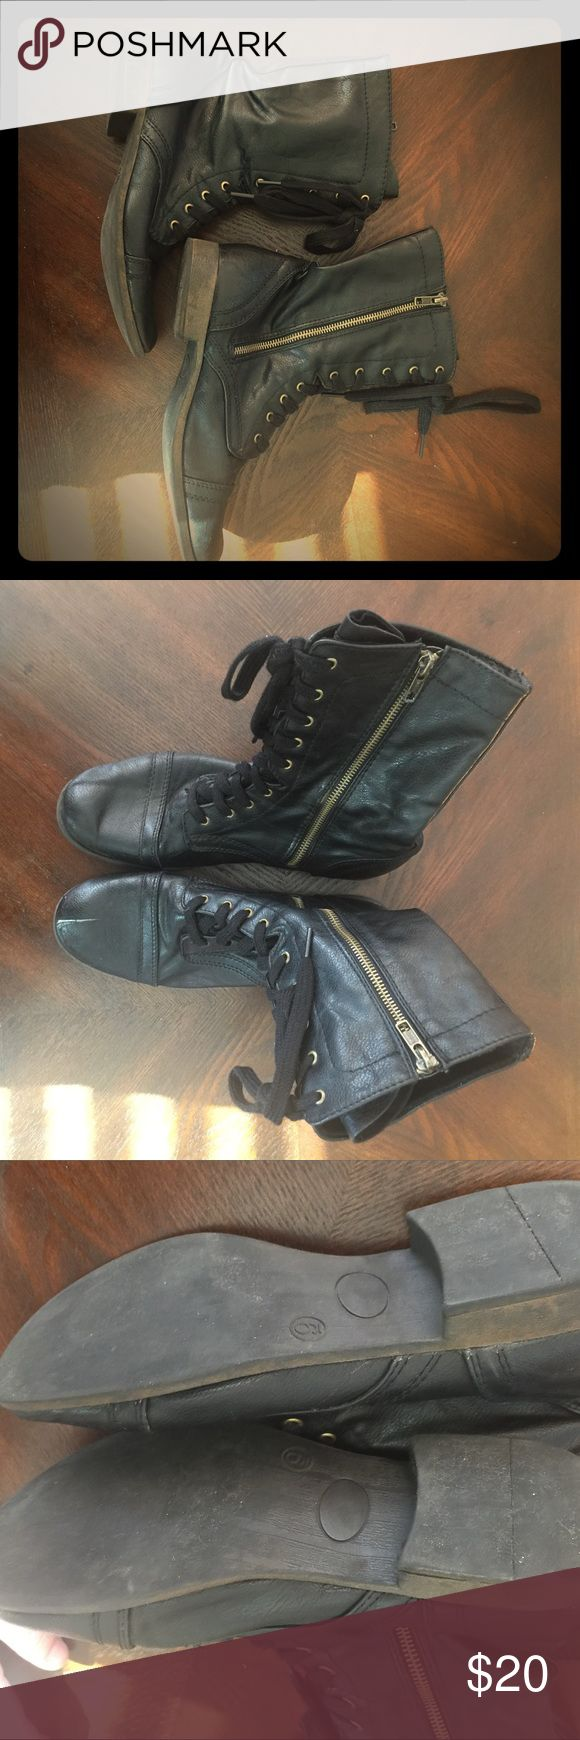 Ladies Black Lace and Zip Combat Boots These boots from Target are so stylish! Lace up fronts and side zips give you options on how to fasten! Super cute and lots of ways to dress them up. Target Shoes Combat & Moto Boots